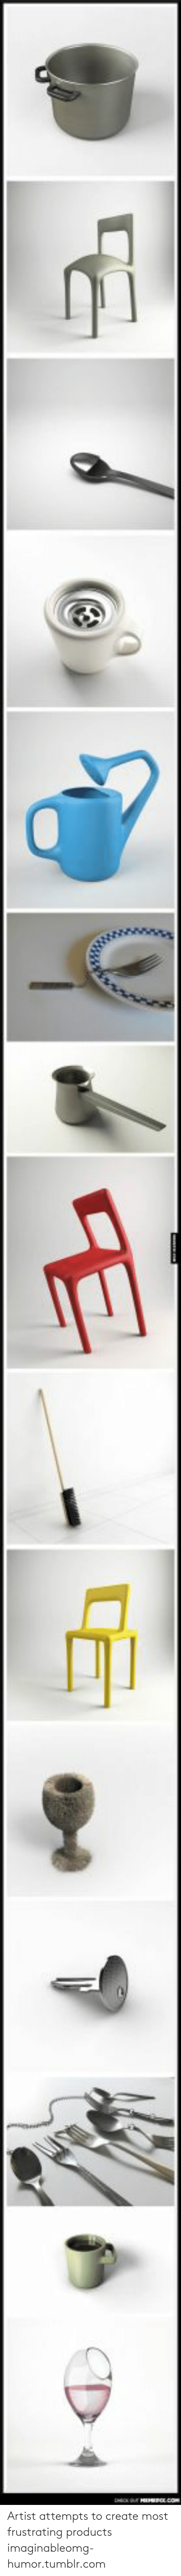 Imaginable: Artist attempts to create most frustrating products imaginableomg-humor.tumblr.com